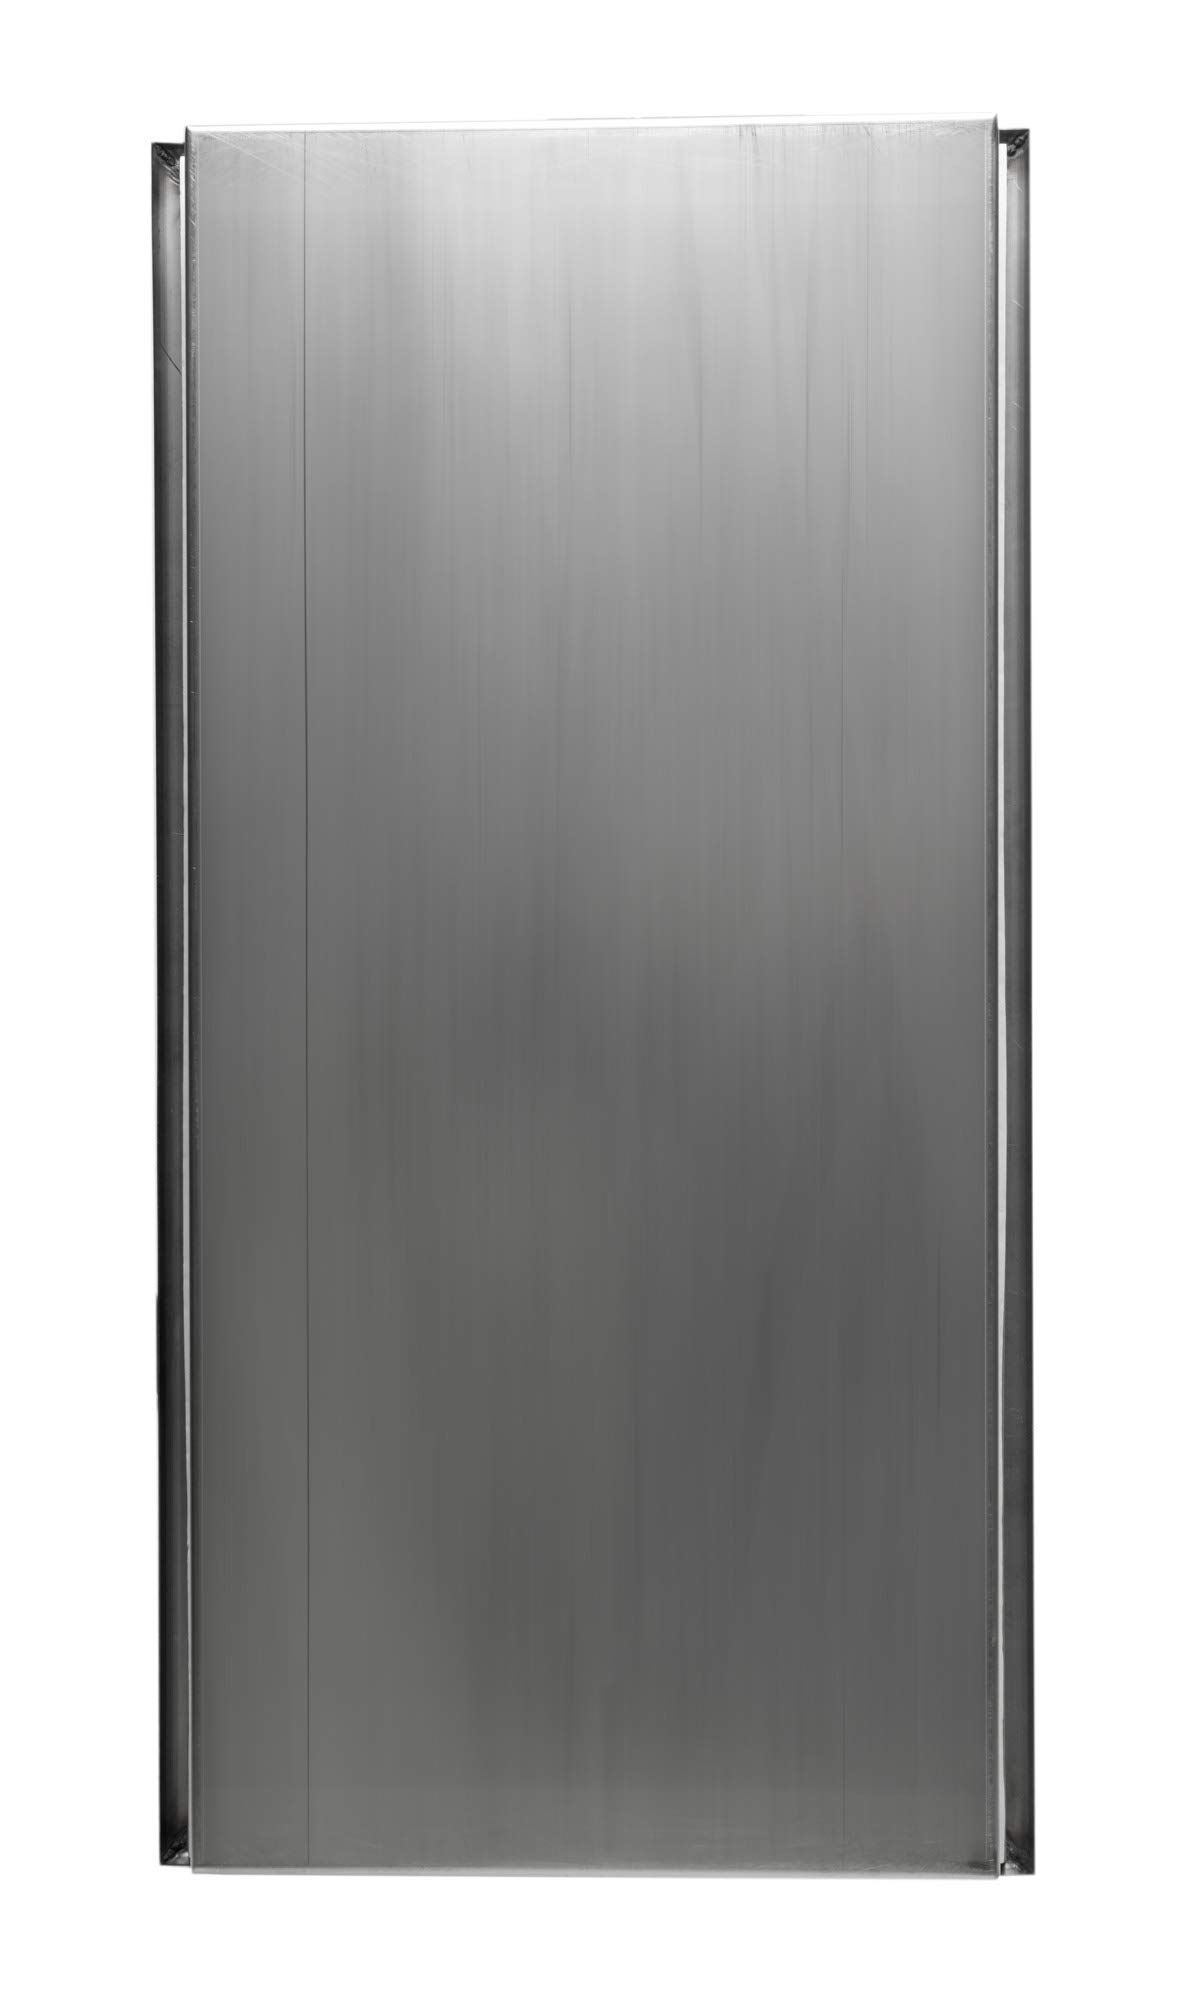 ALFI brand ABN2412-PSS Shower Niche, Polished Stainless Steel by Alfi (Image #3)